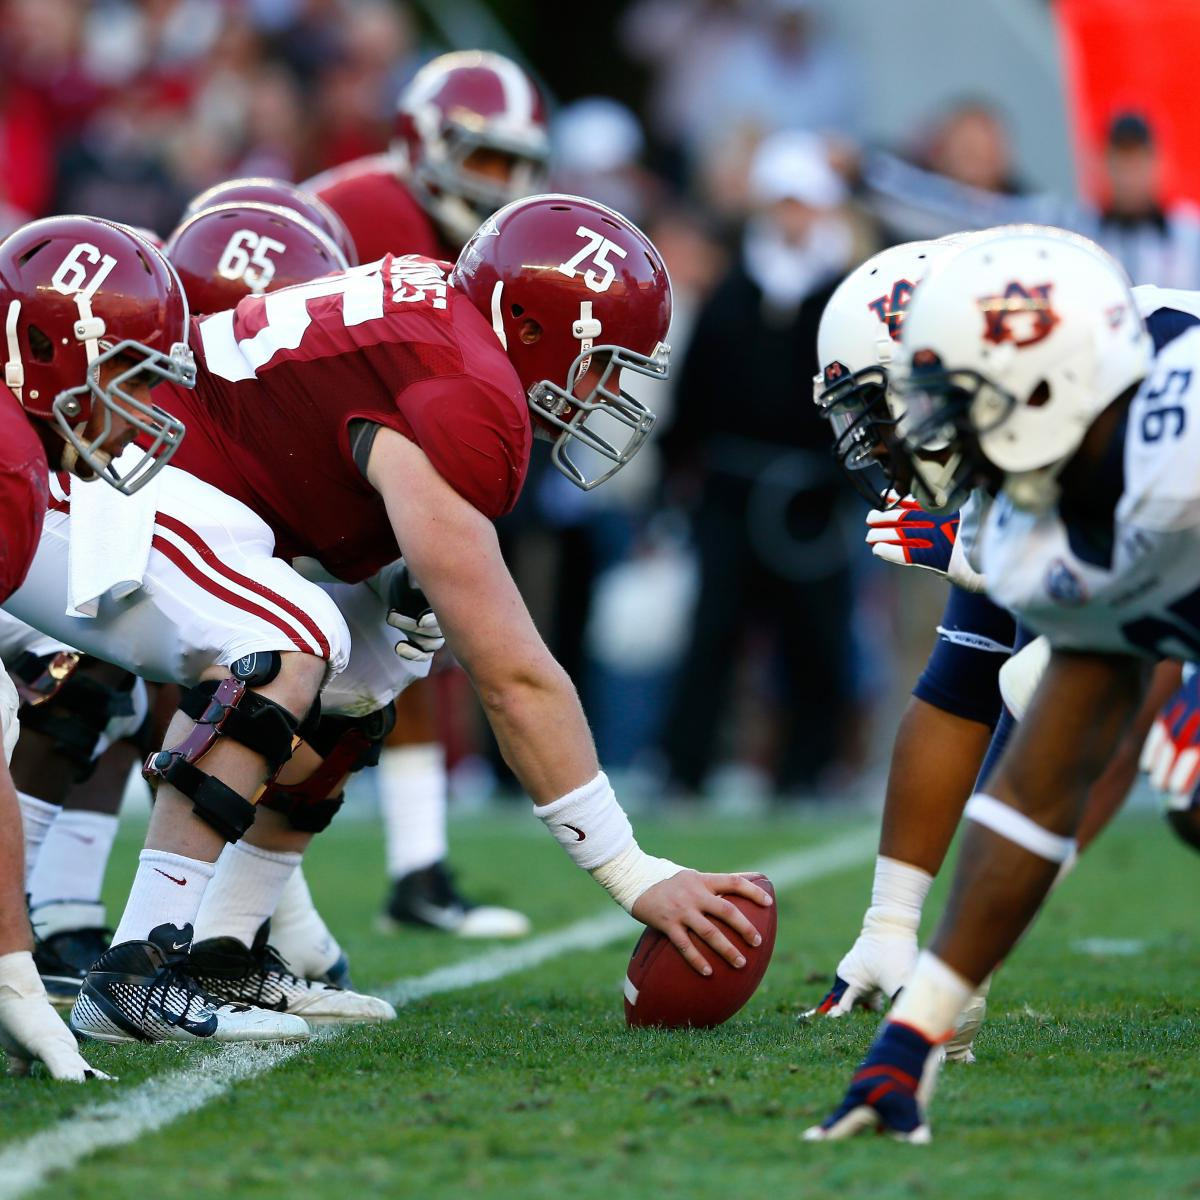 7465c2e0862 Every College Football Team's Biggest Rivalry Game | Bleacher Report |  Latest News, Videos and Highlights